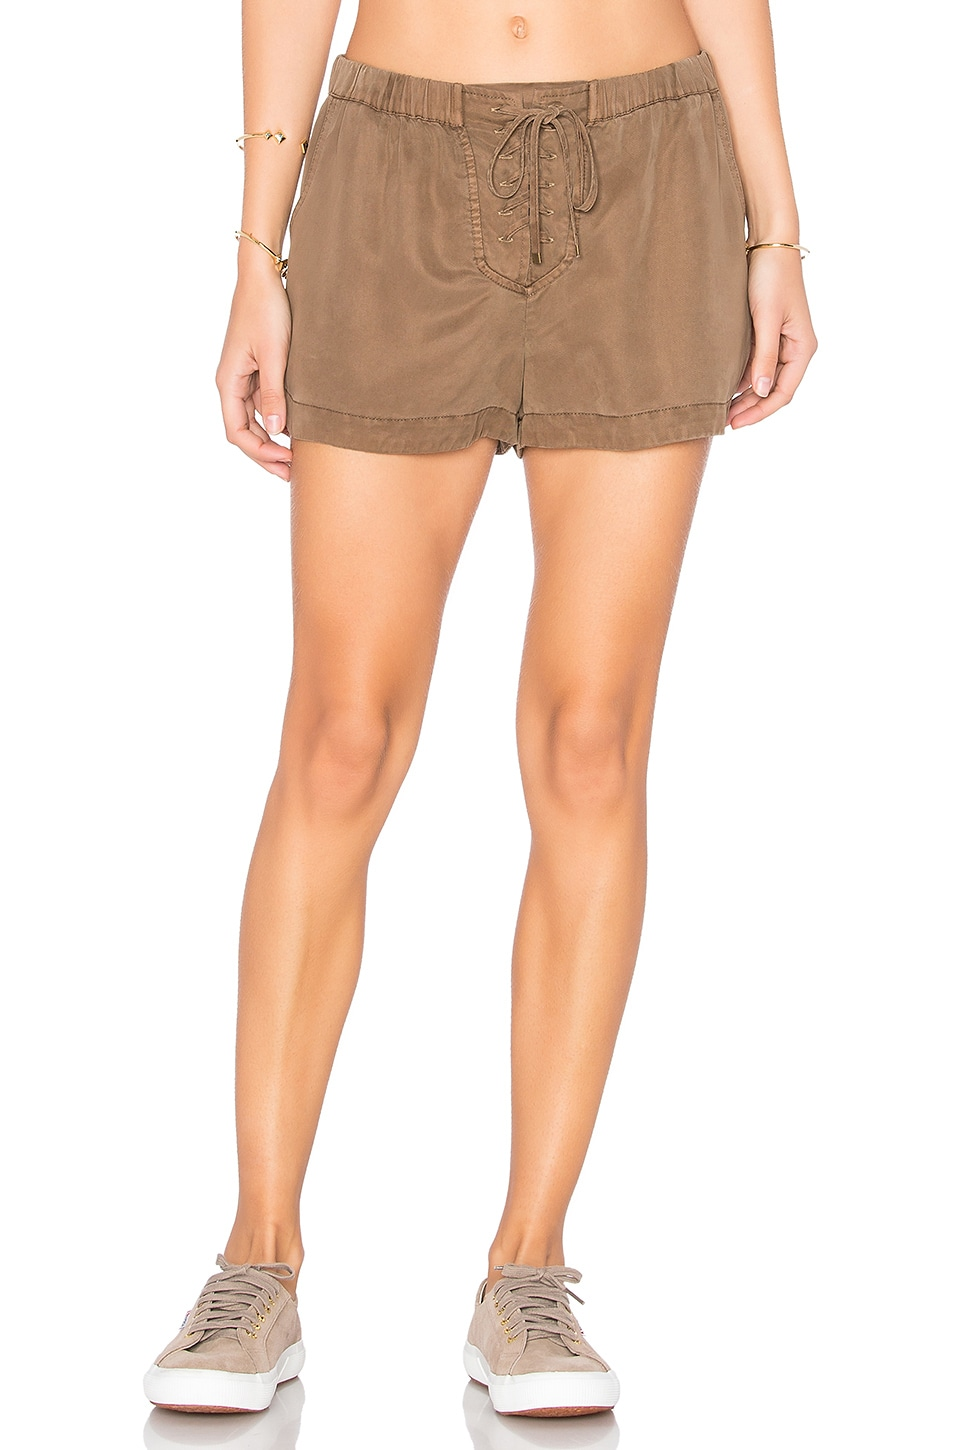 Moby Short by YFB CLOTHING